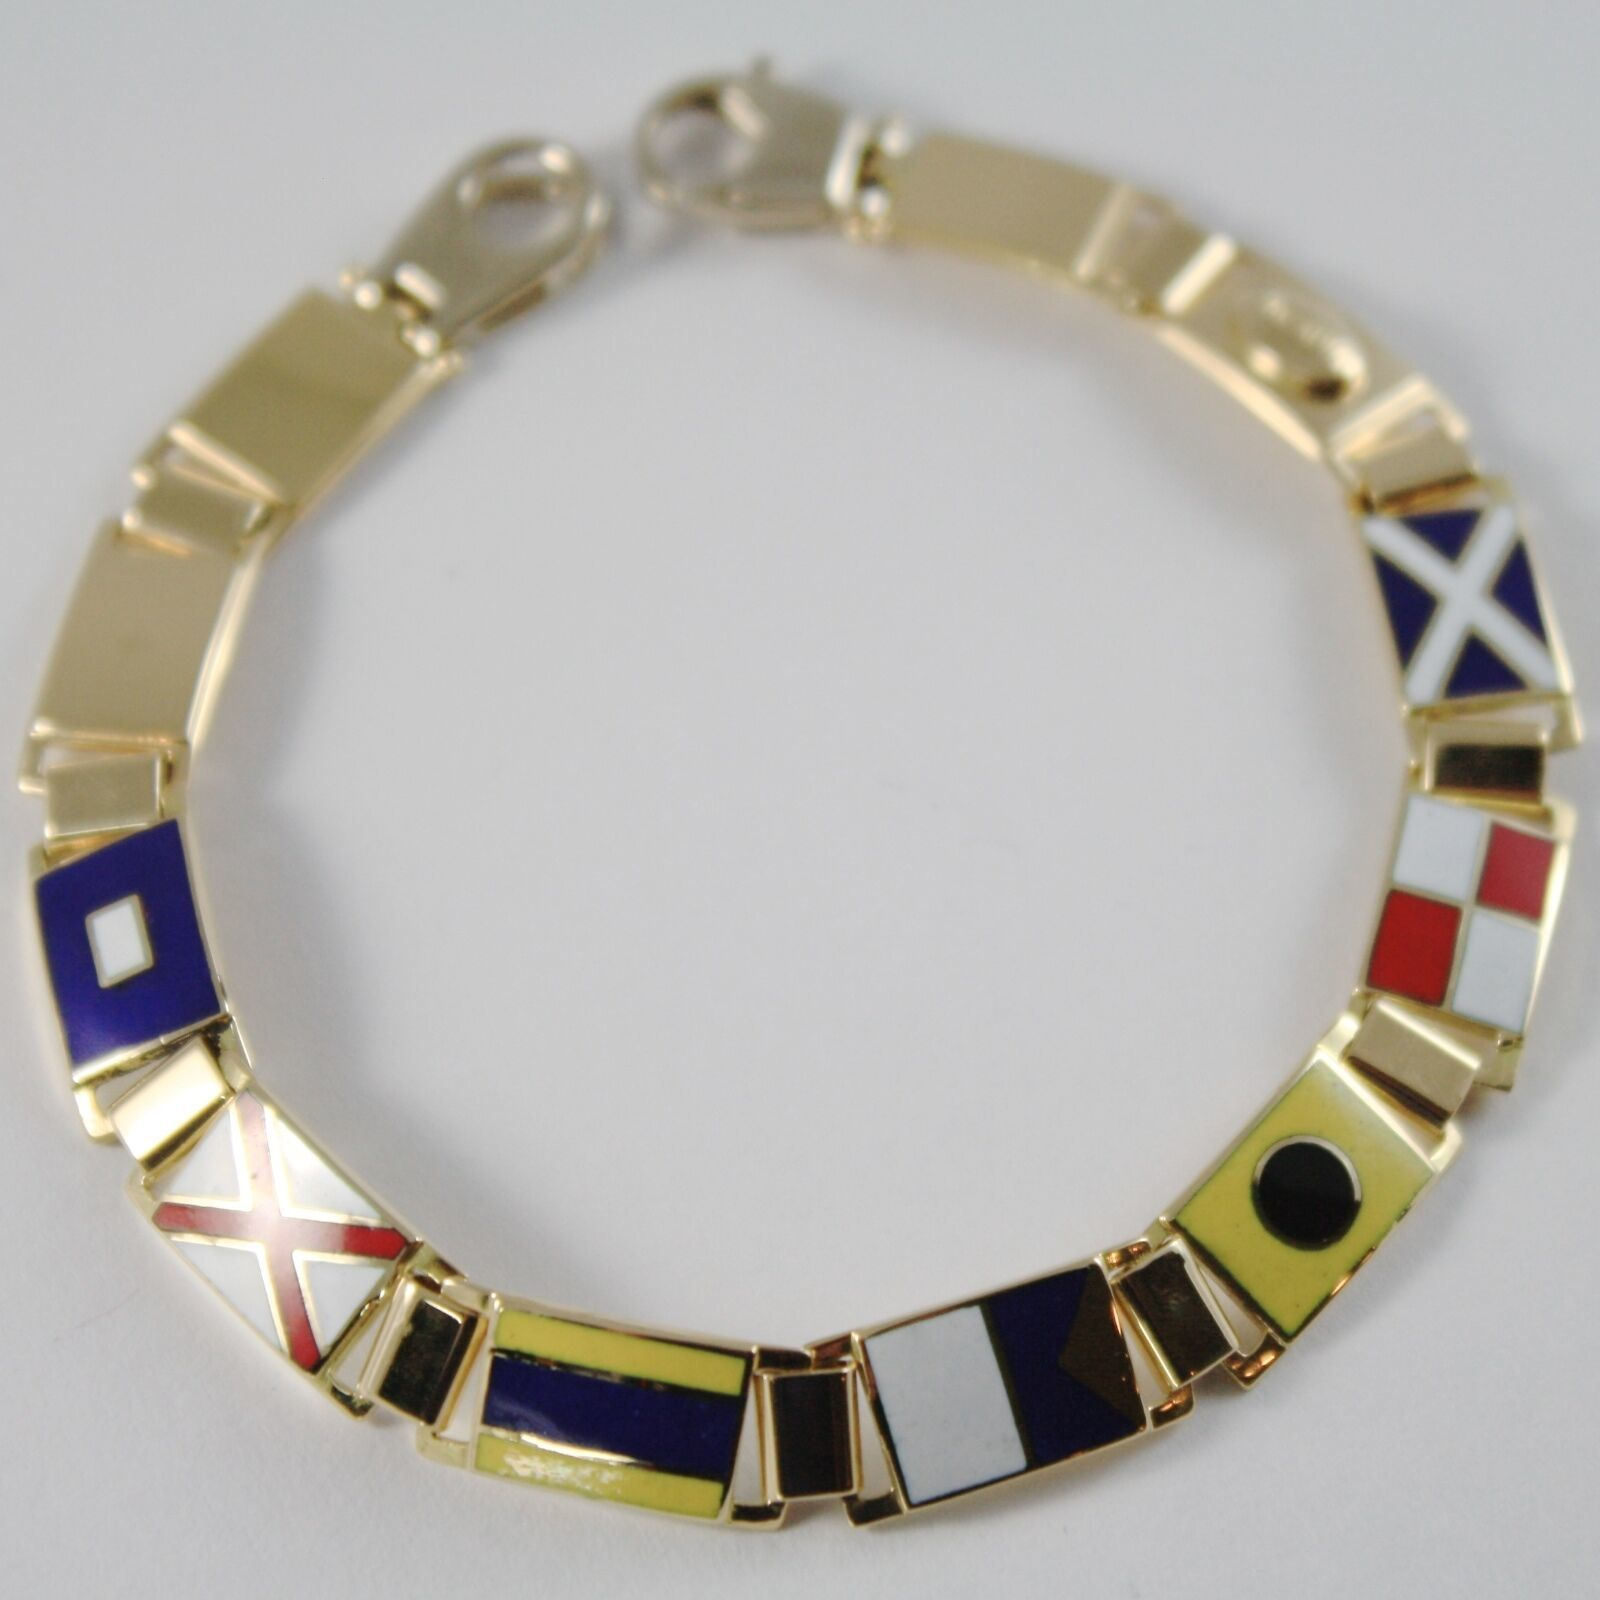 Yellow Gold Bracelet 750 18k, Nautical Flags 8 MM, Enamel, Made in Italy